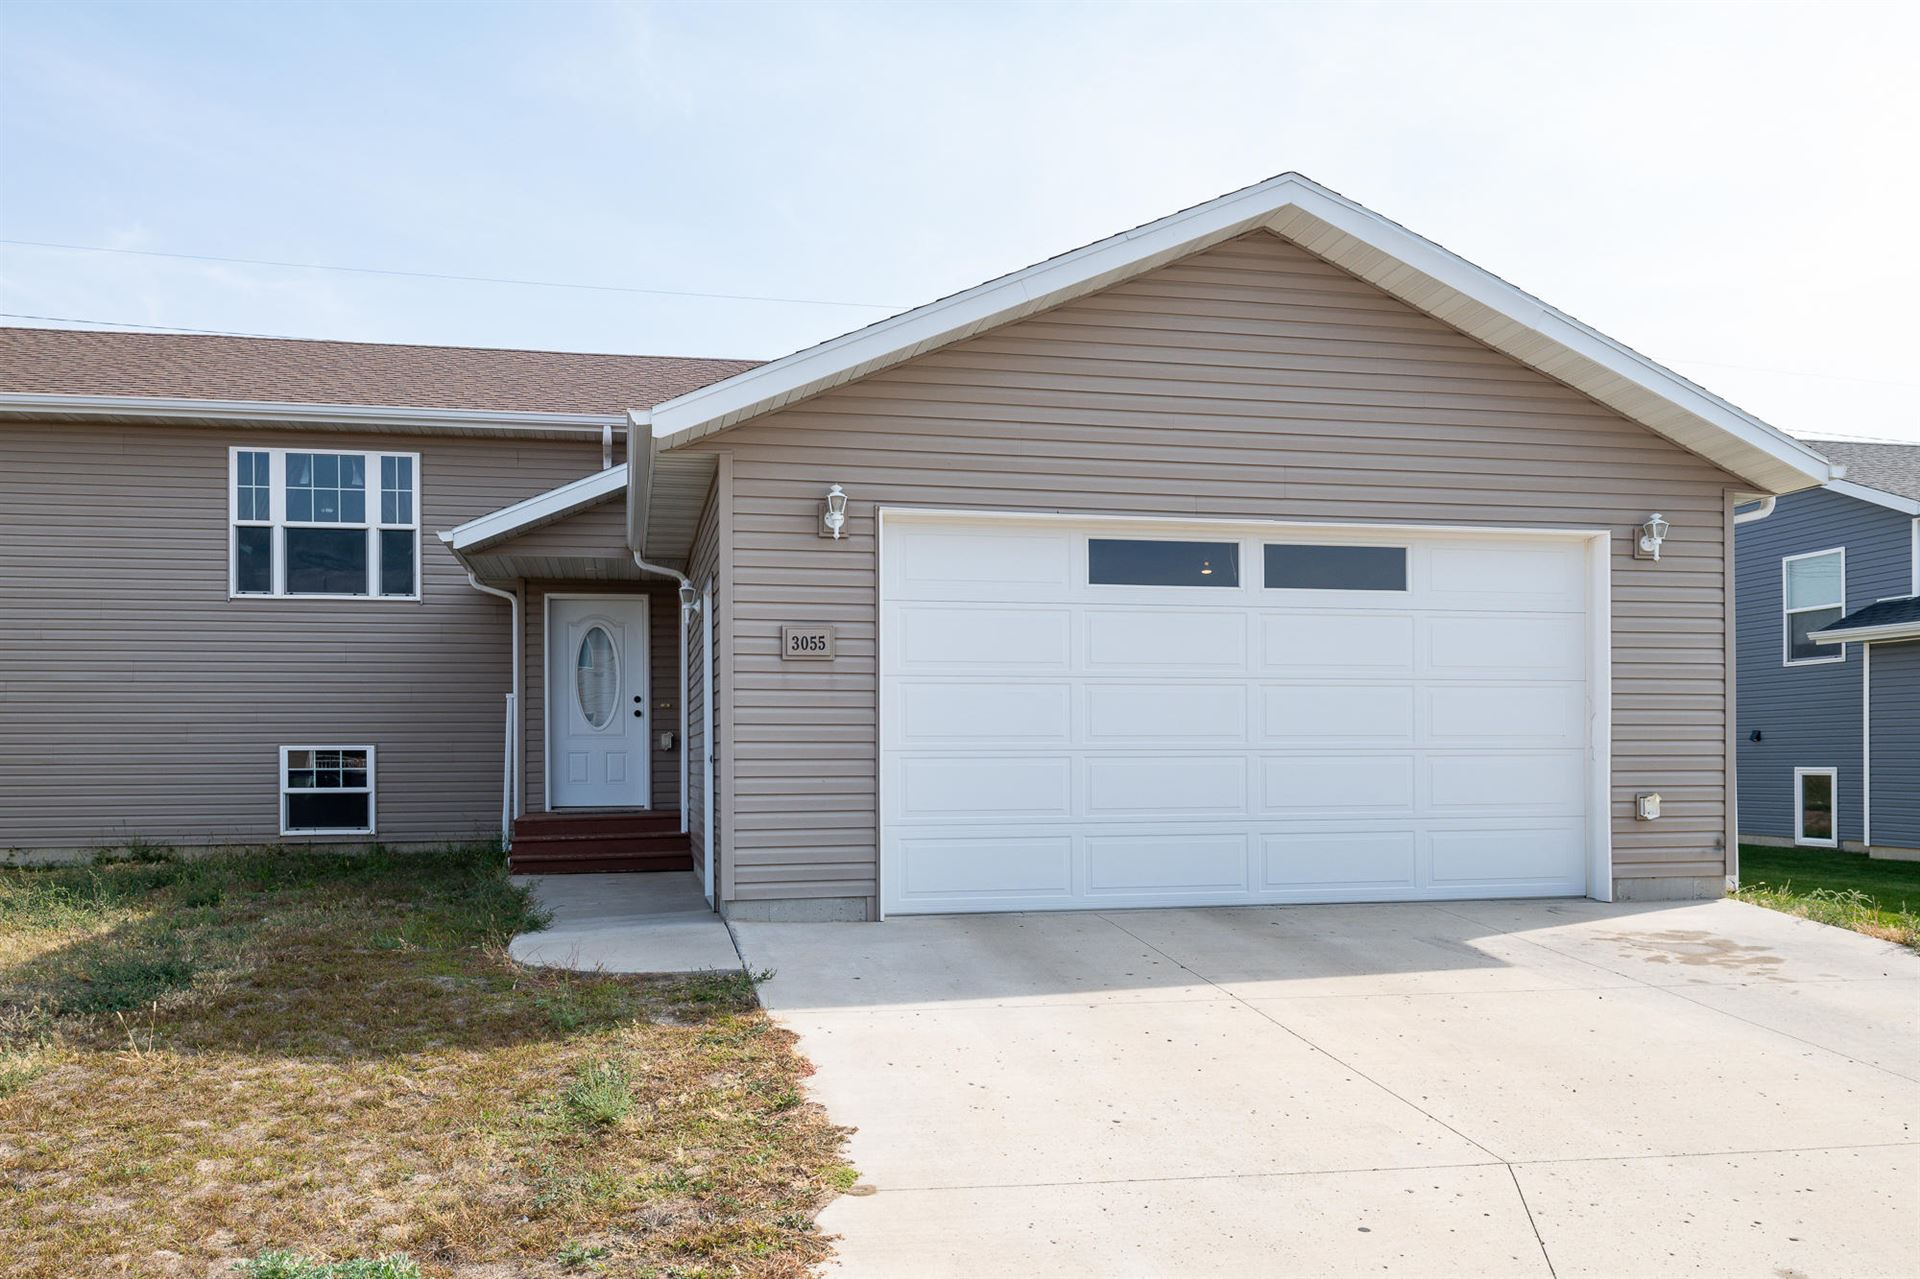 3055 Mccurry Way, Lincoln, ND 58504 - #: 411278